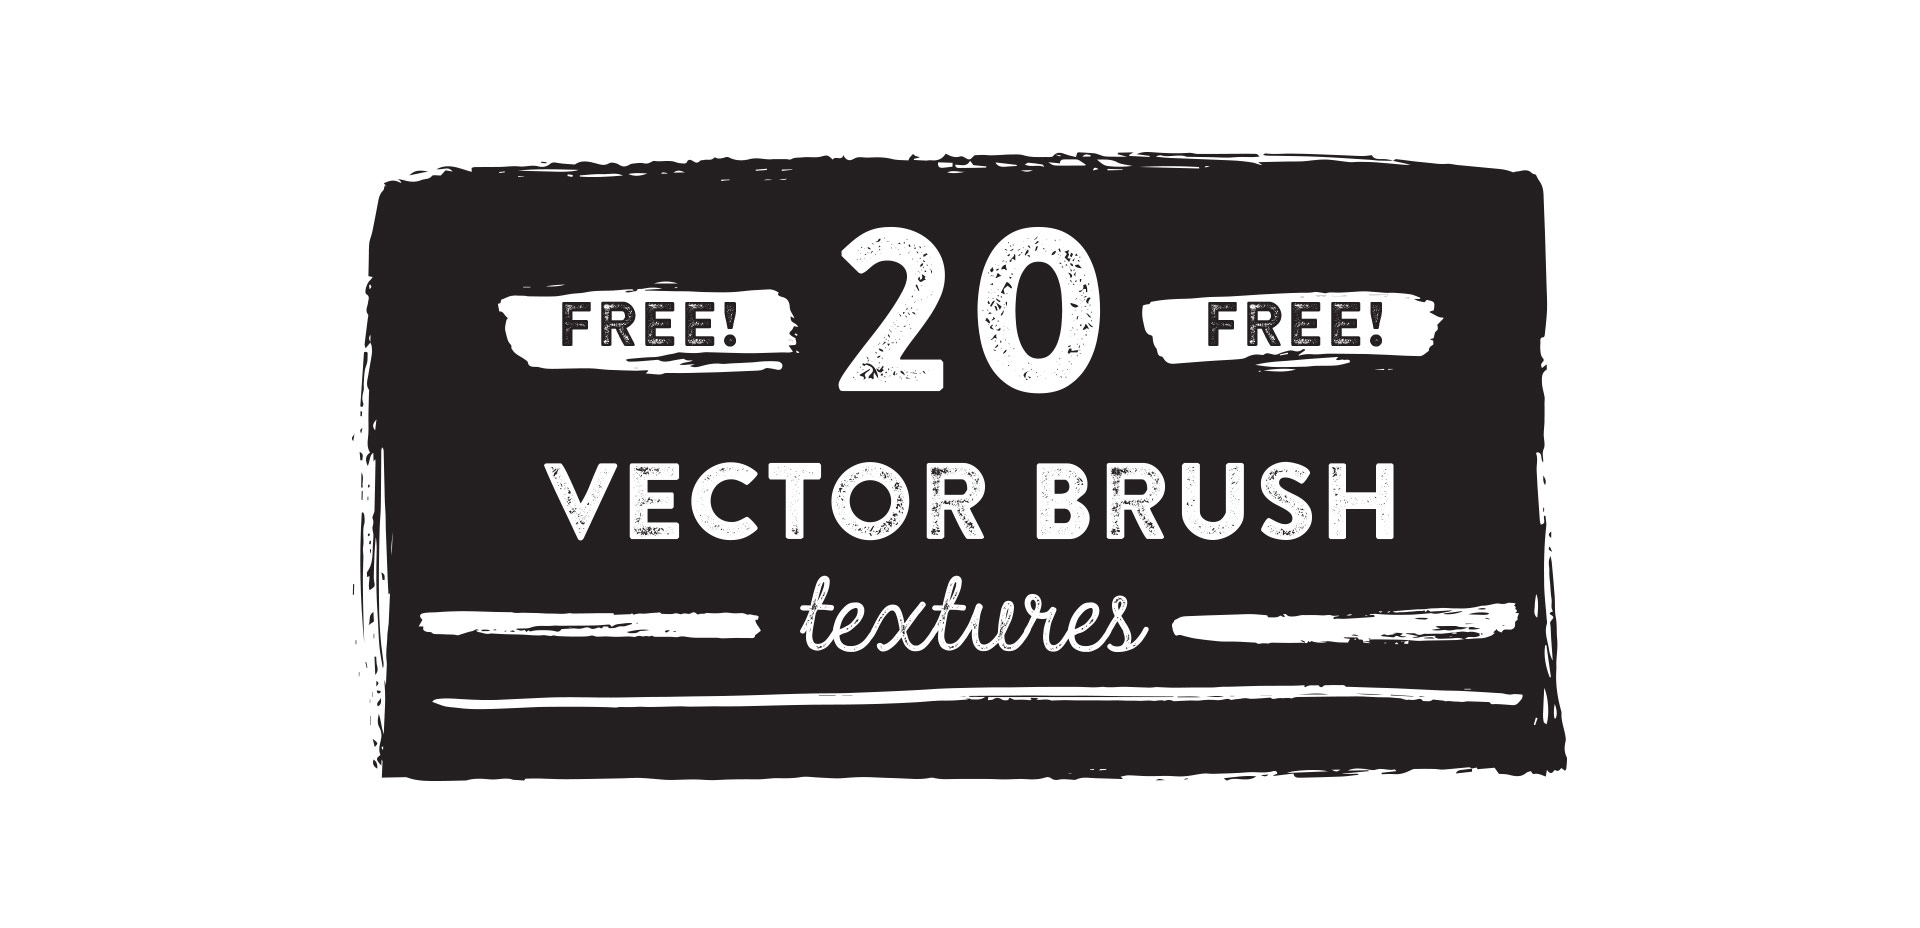 free vector brush textures